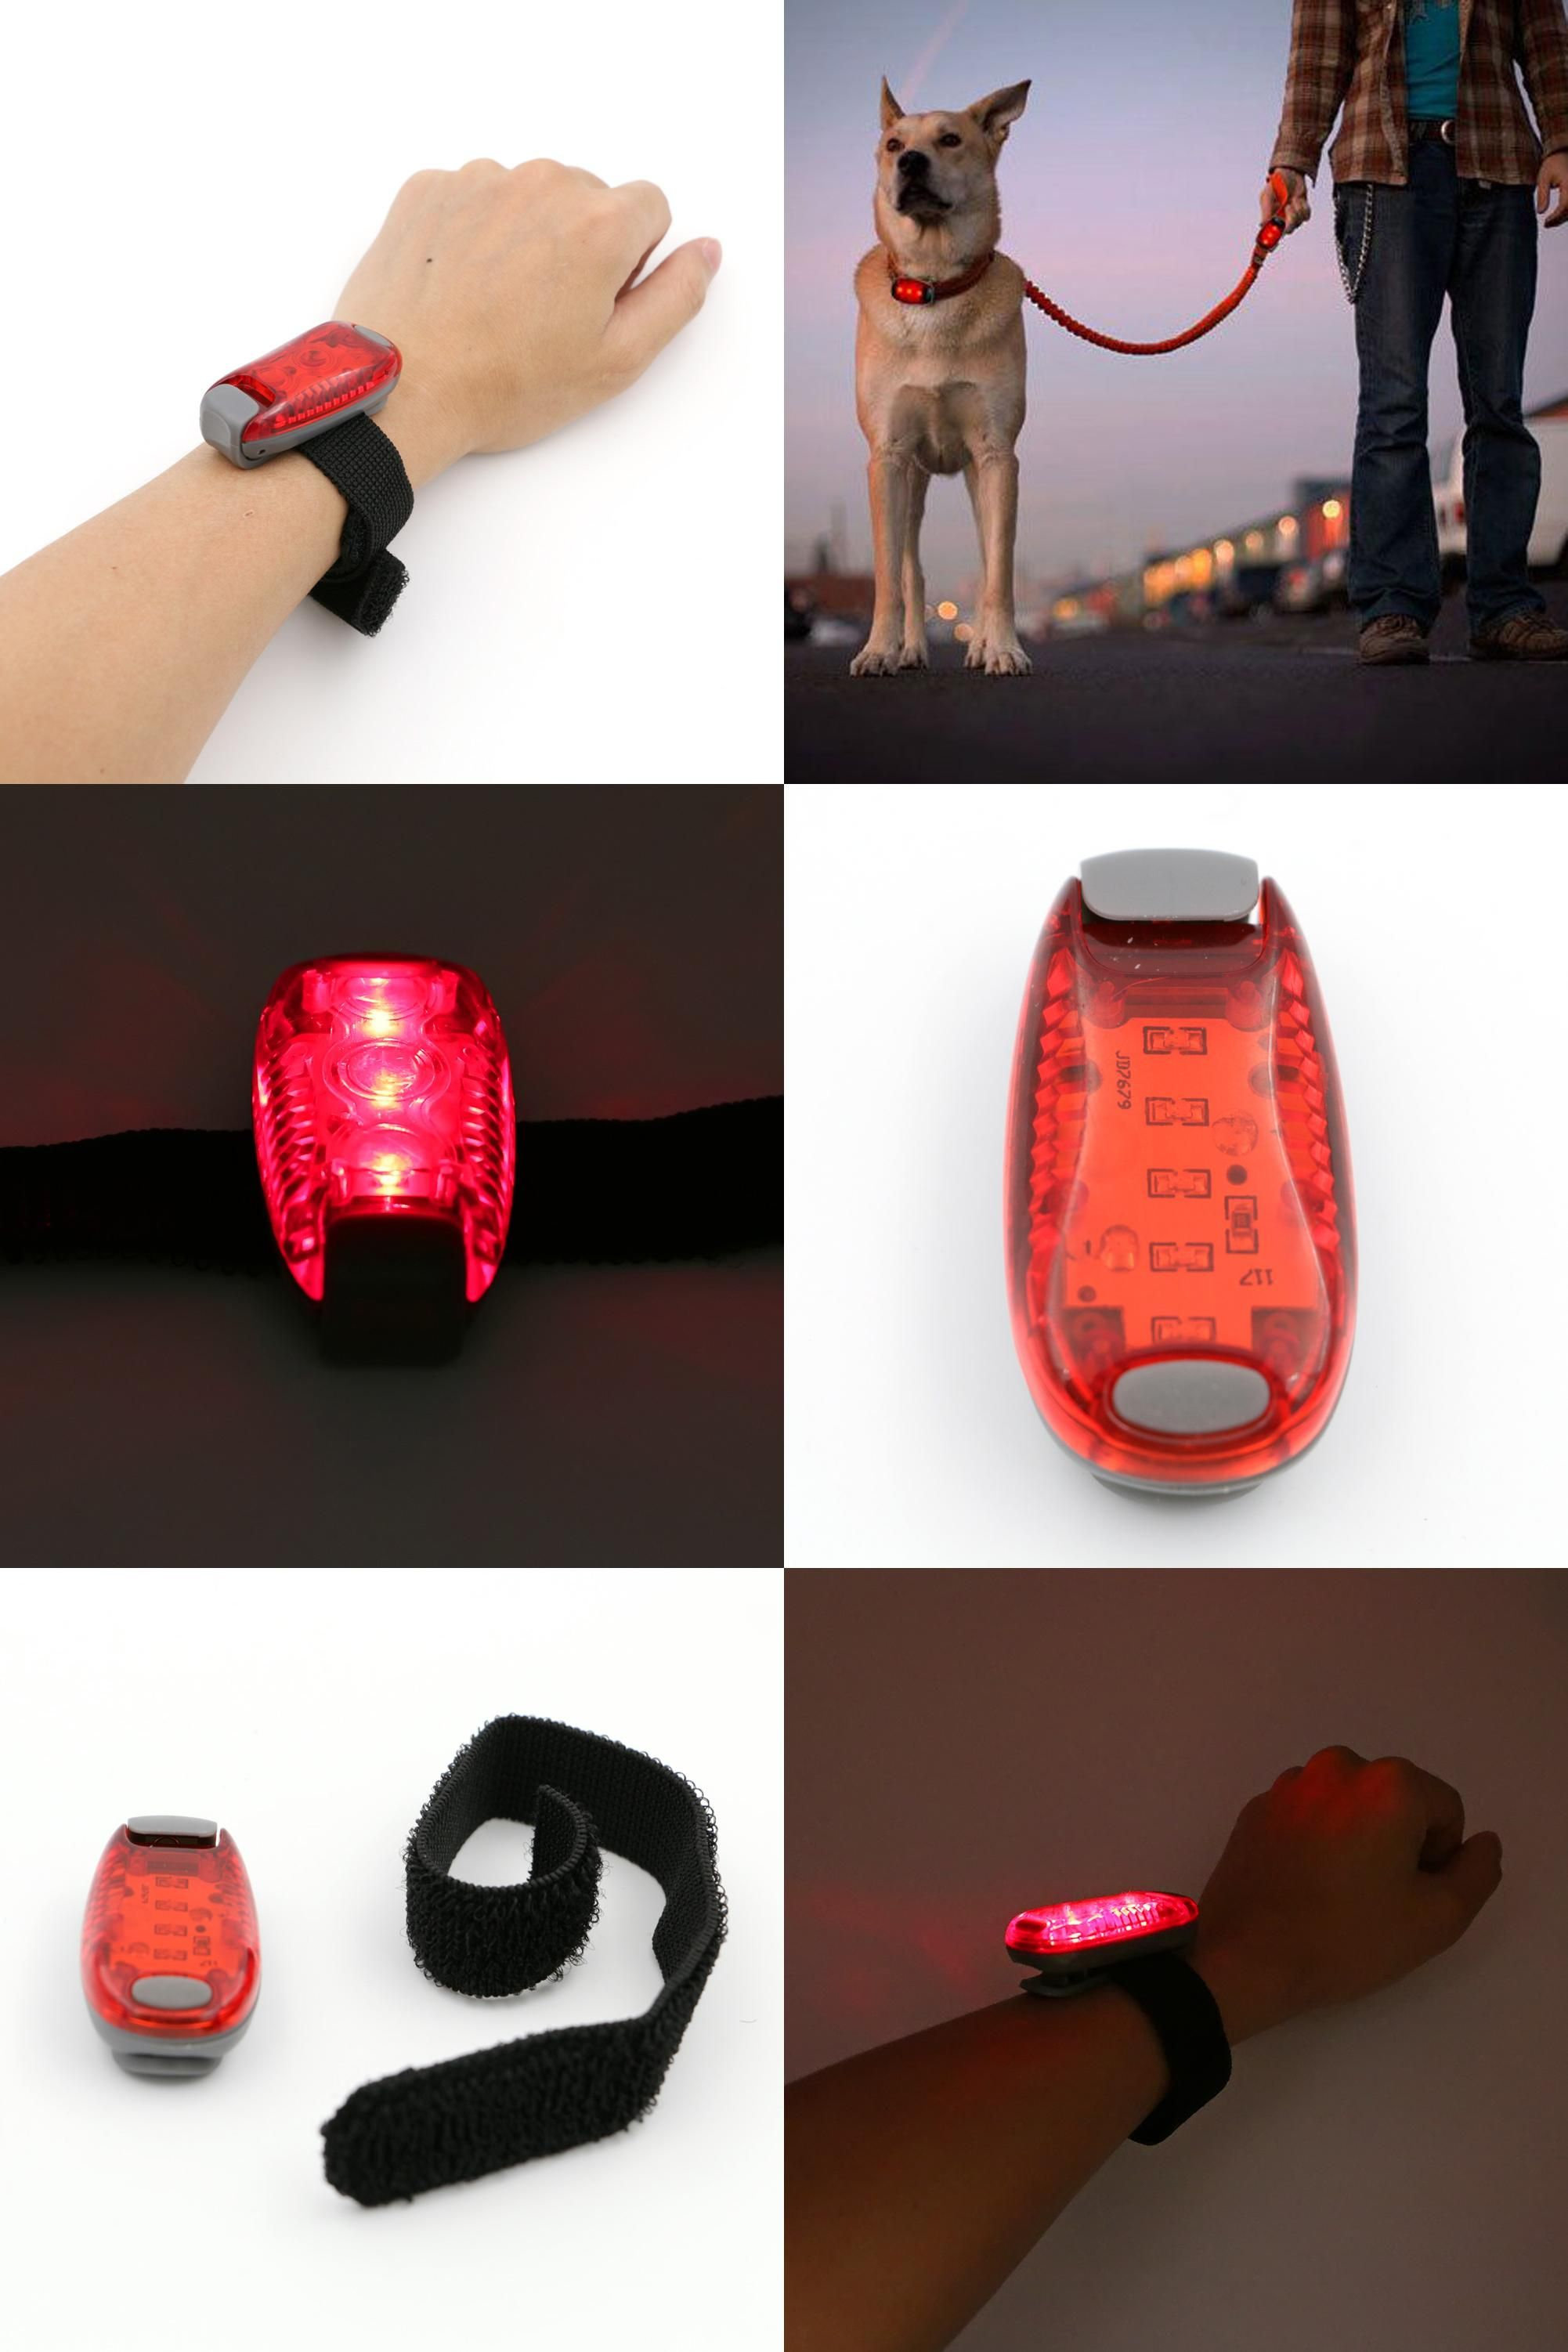 5 LED Mini Light for Running Bicycle Cycling Jogging Safety Warning Lamp Torch